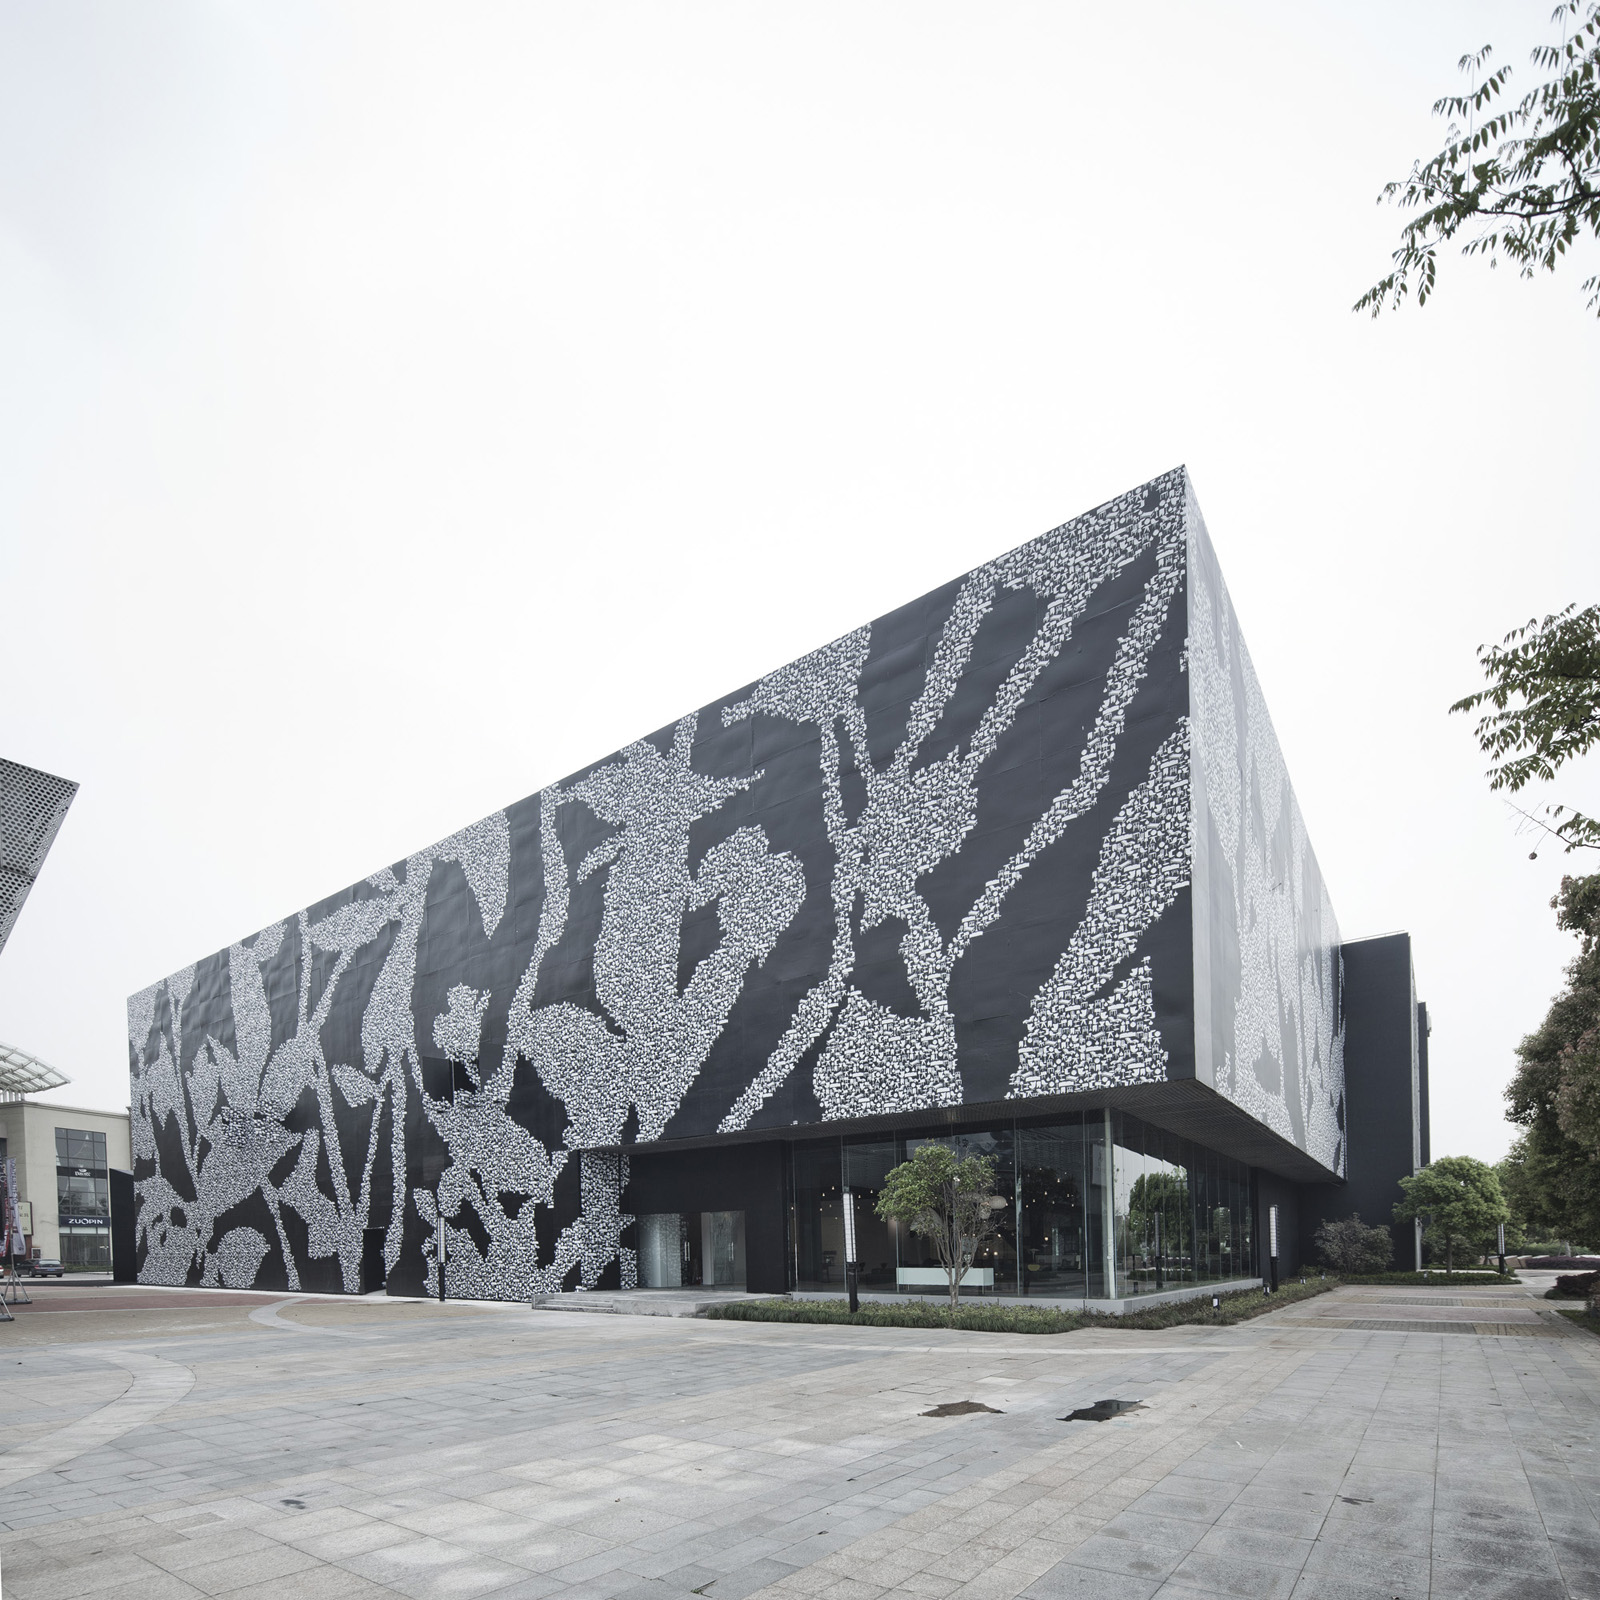 Design Collective / Neri & Hu Design and Research Office, © Shen Zhonghai